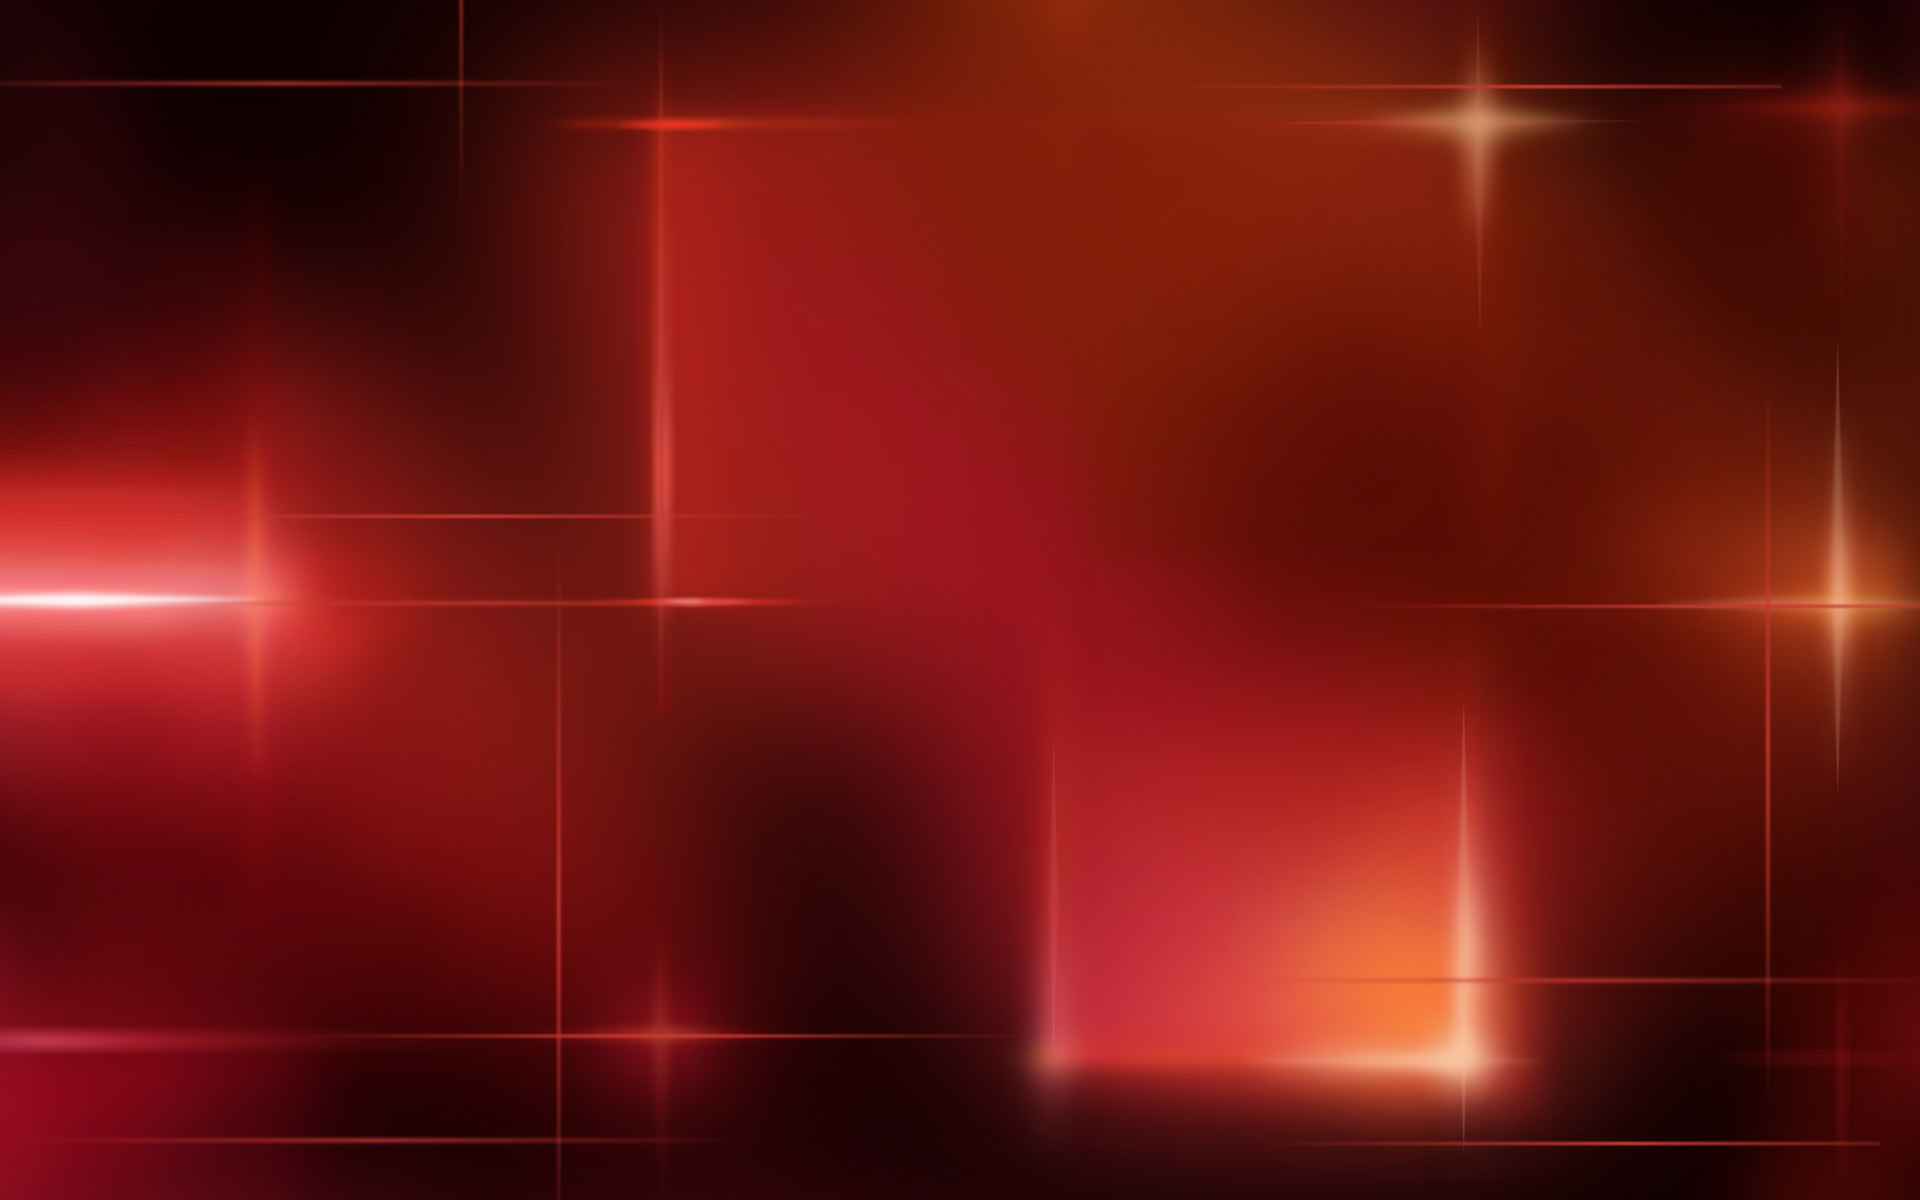 Abstract Wallpaper For Tablet Pc Background: 40 Crisp Red Wallpapers For Desktop, Laptop And Tablet Devices